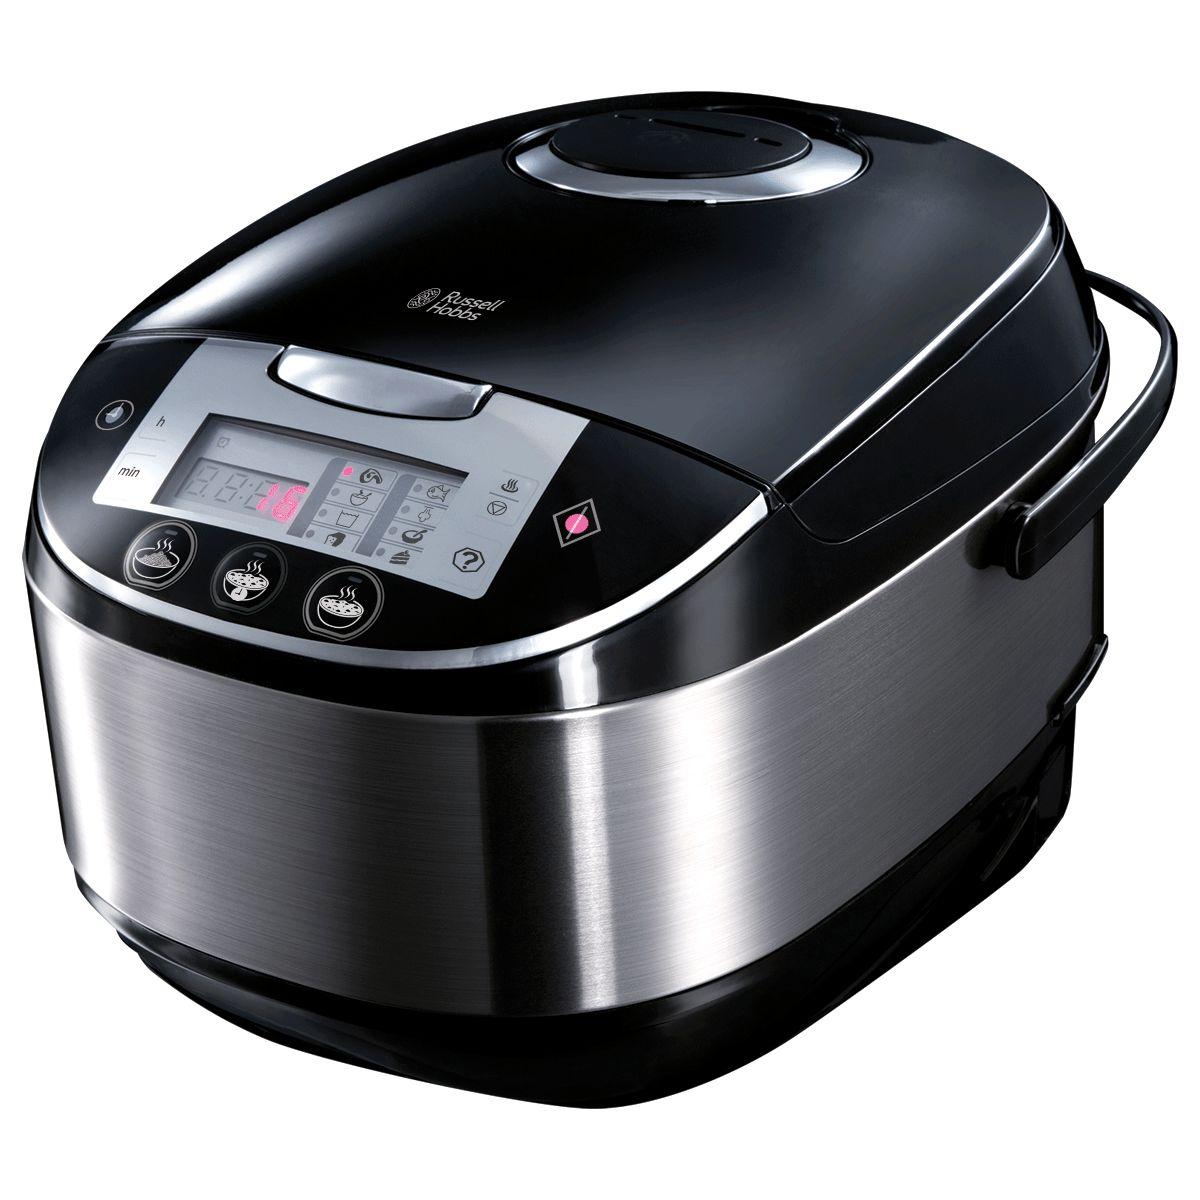 Cuiseur multifonction russell hobbs 21850-56 (photo)